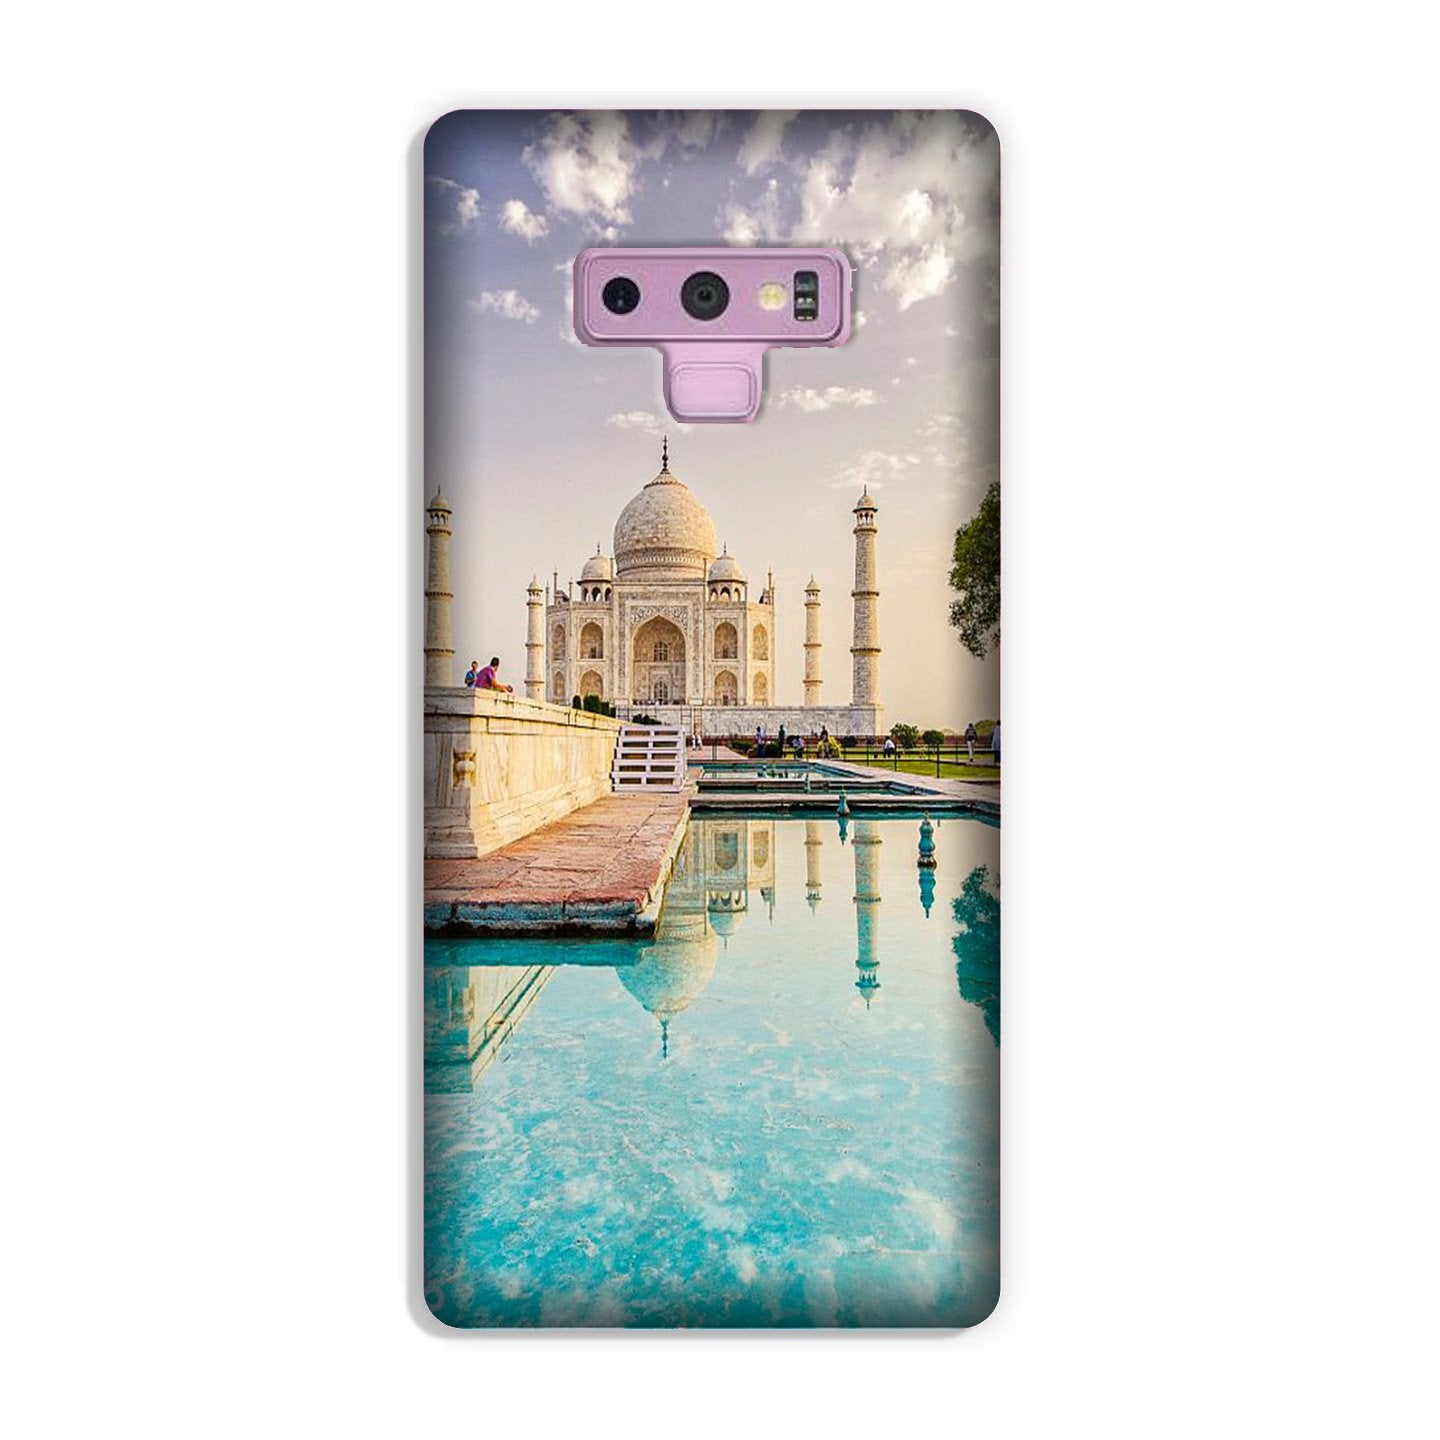 Tajmahal Case for Galaxy Note 9